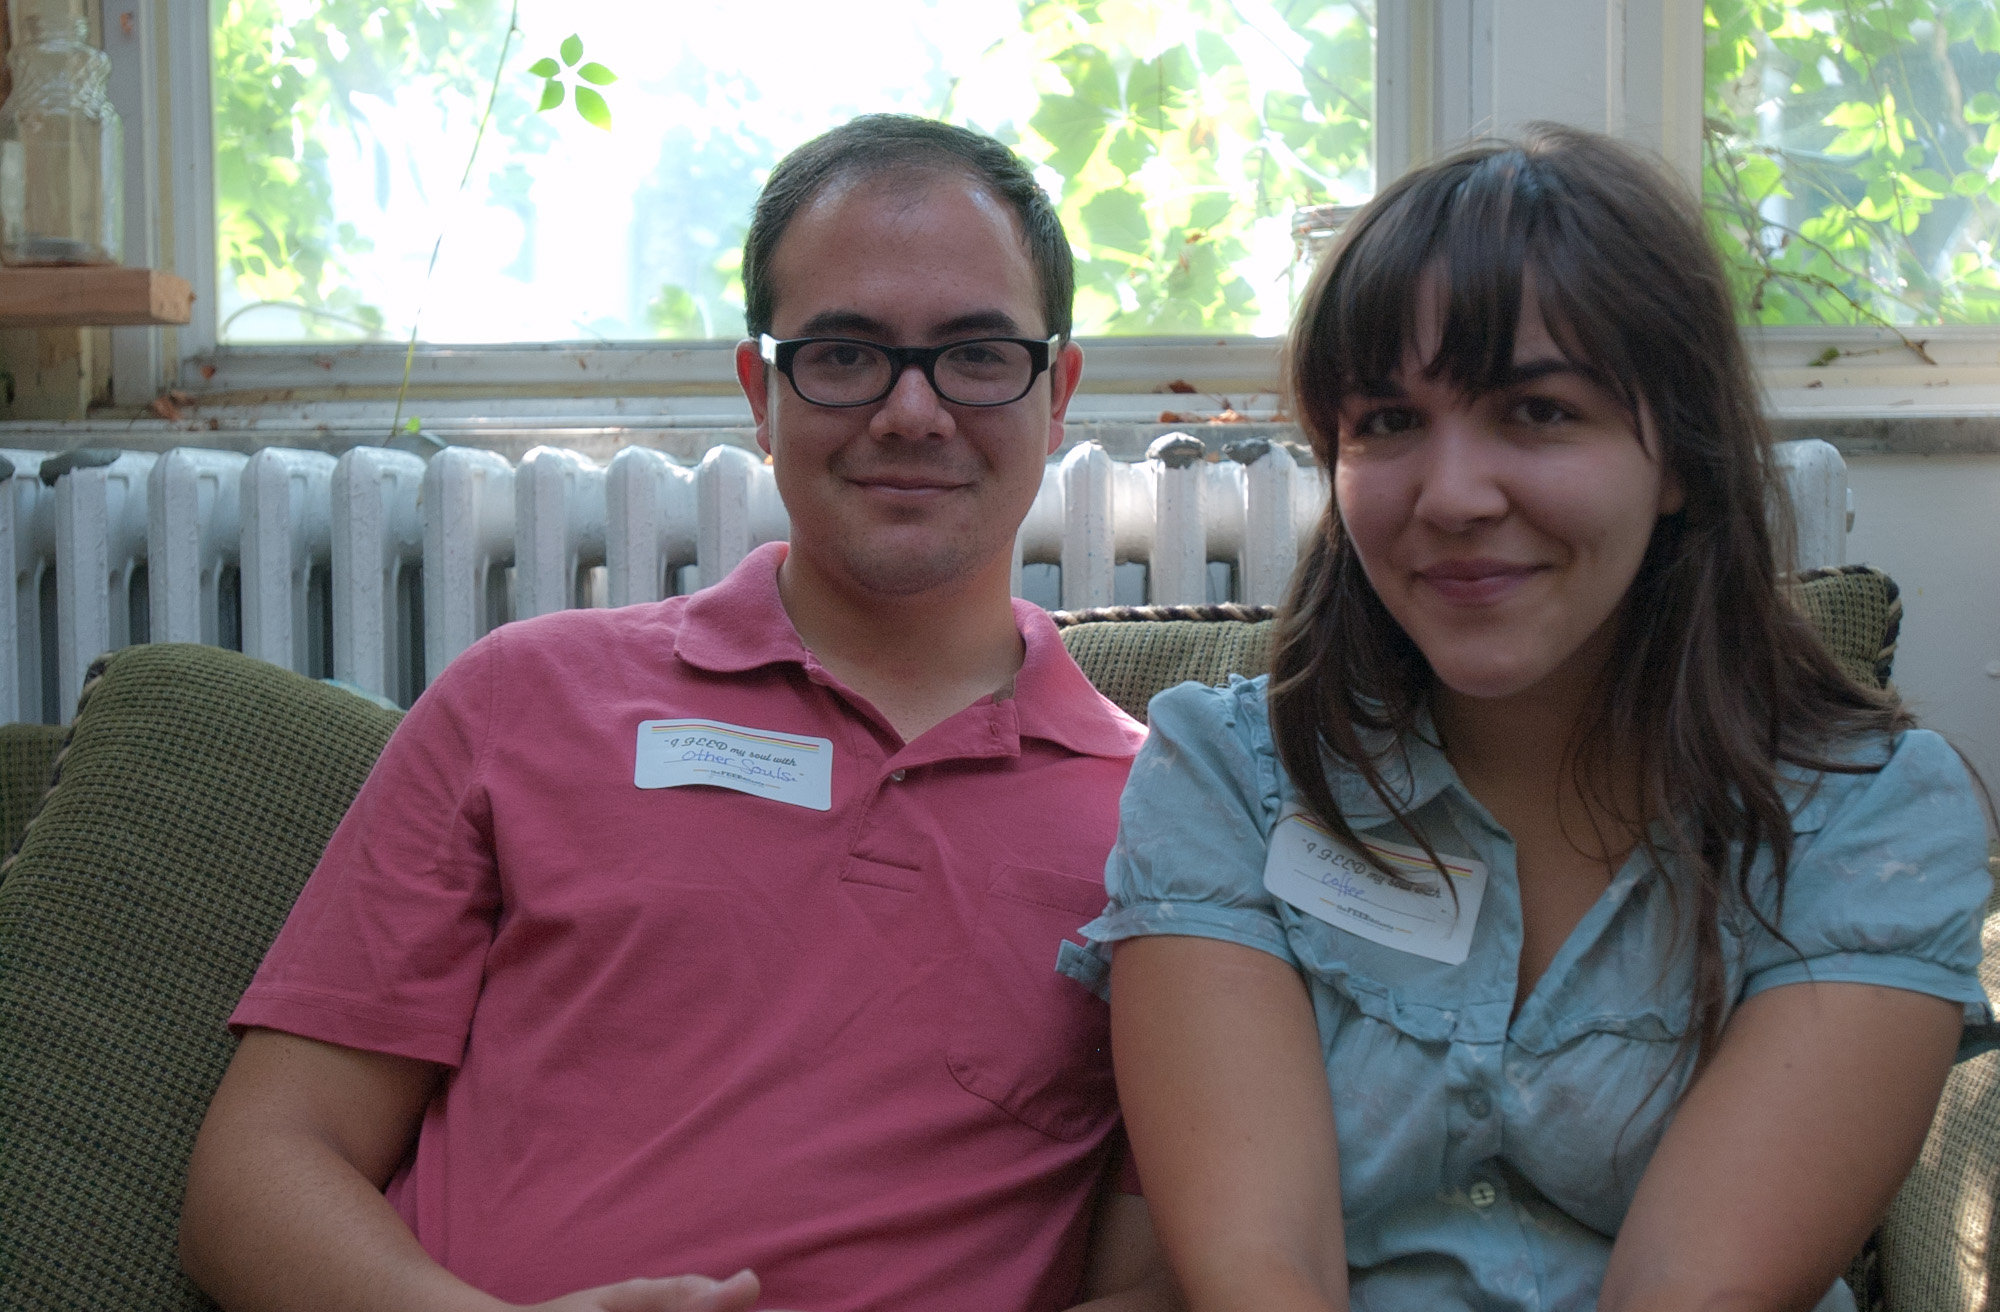 MEET Jeremy and Susannah: entrepreneurial journalists and arts enthusiasts